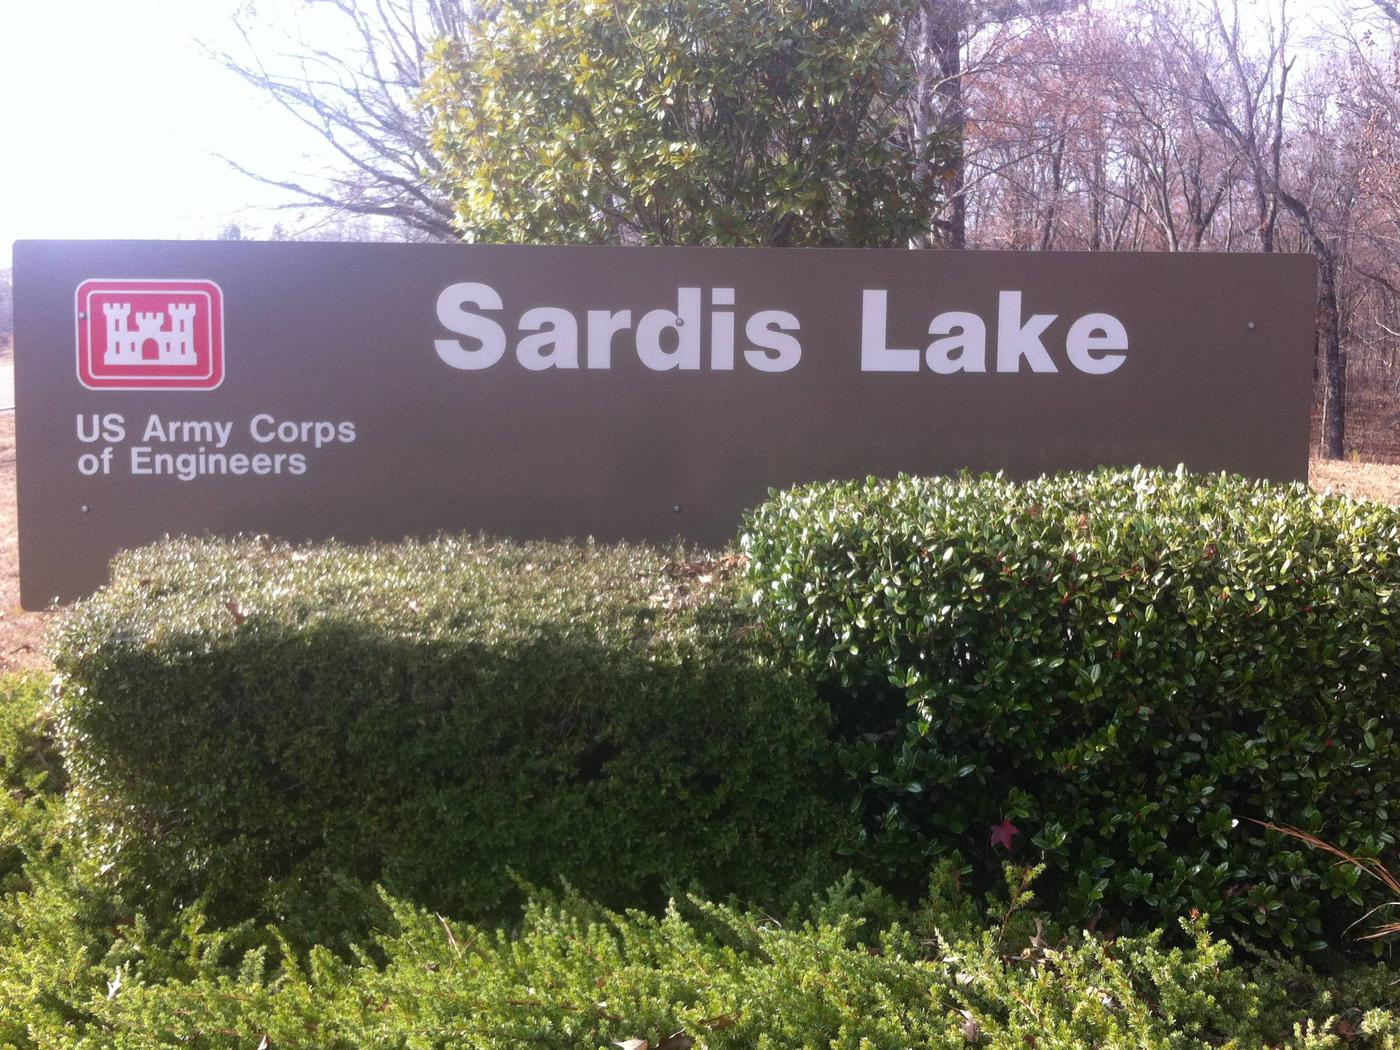 Sardis Lake Entrance SignWelcome to Sardis Lake